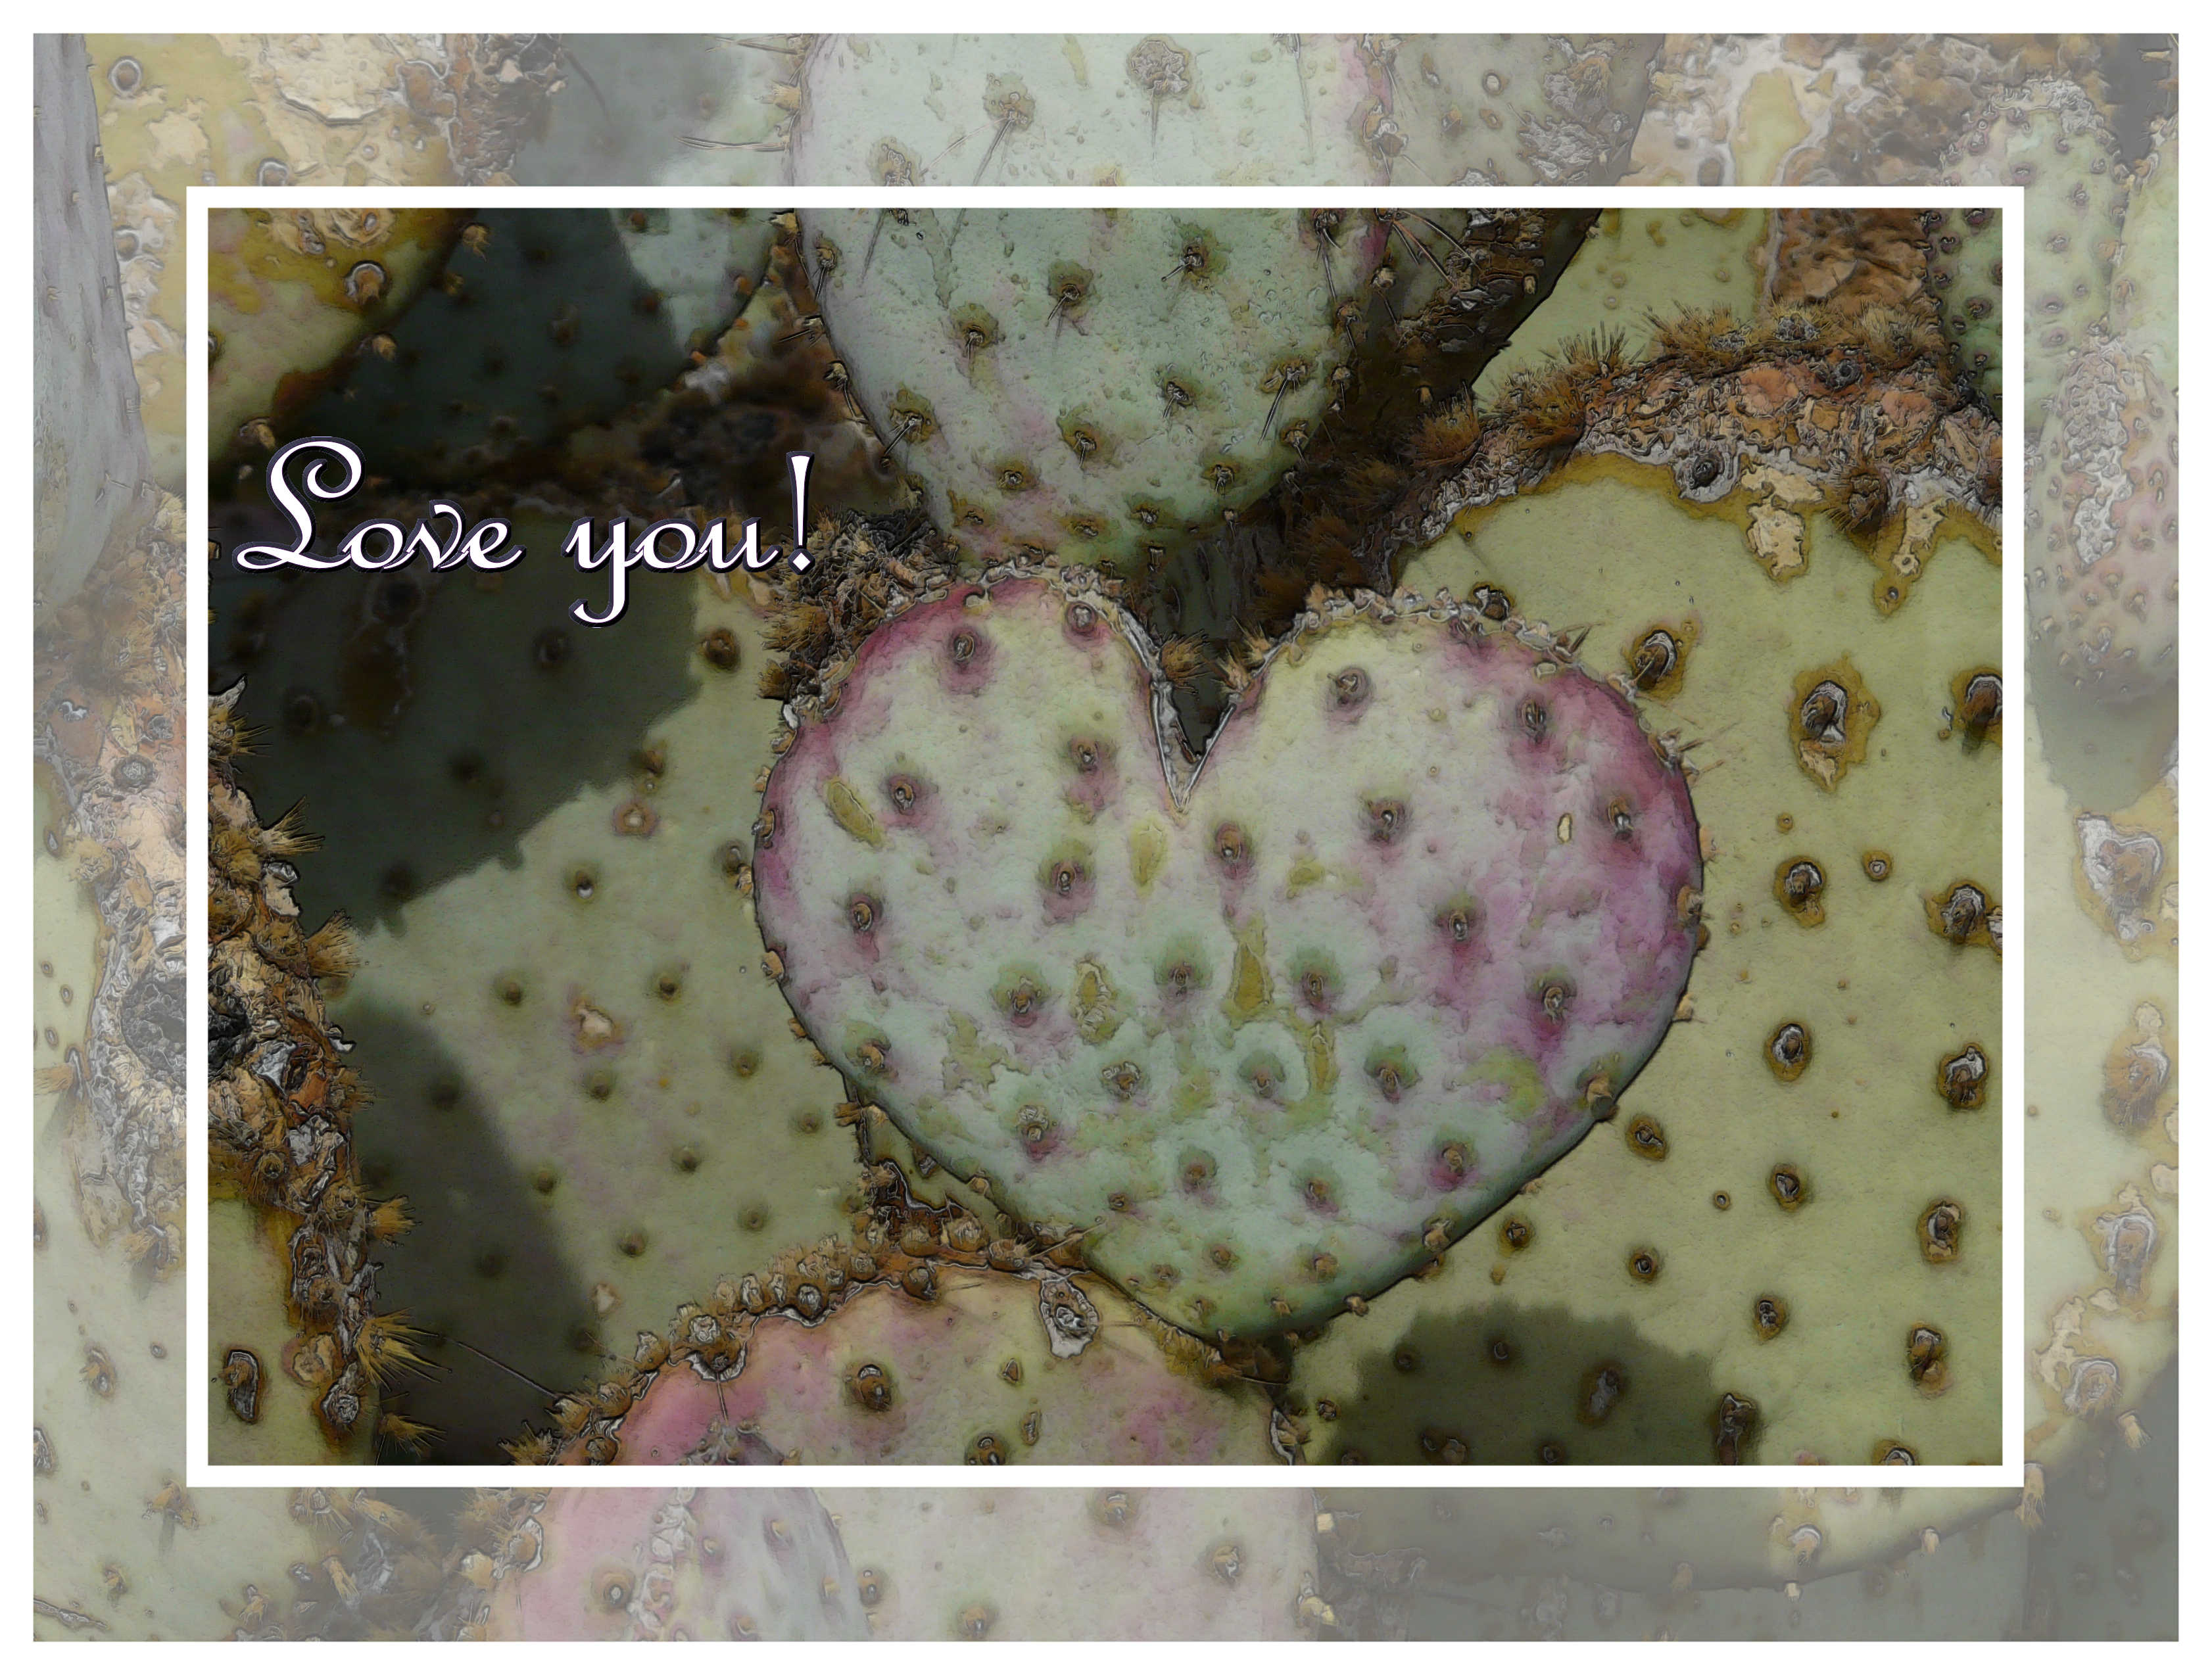 Prickly Pear shaped like heart